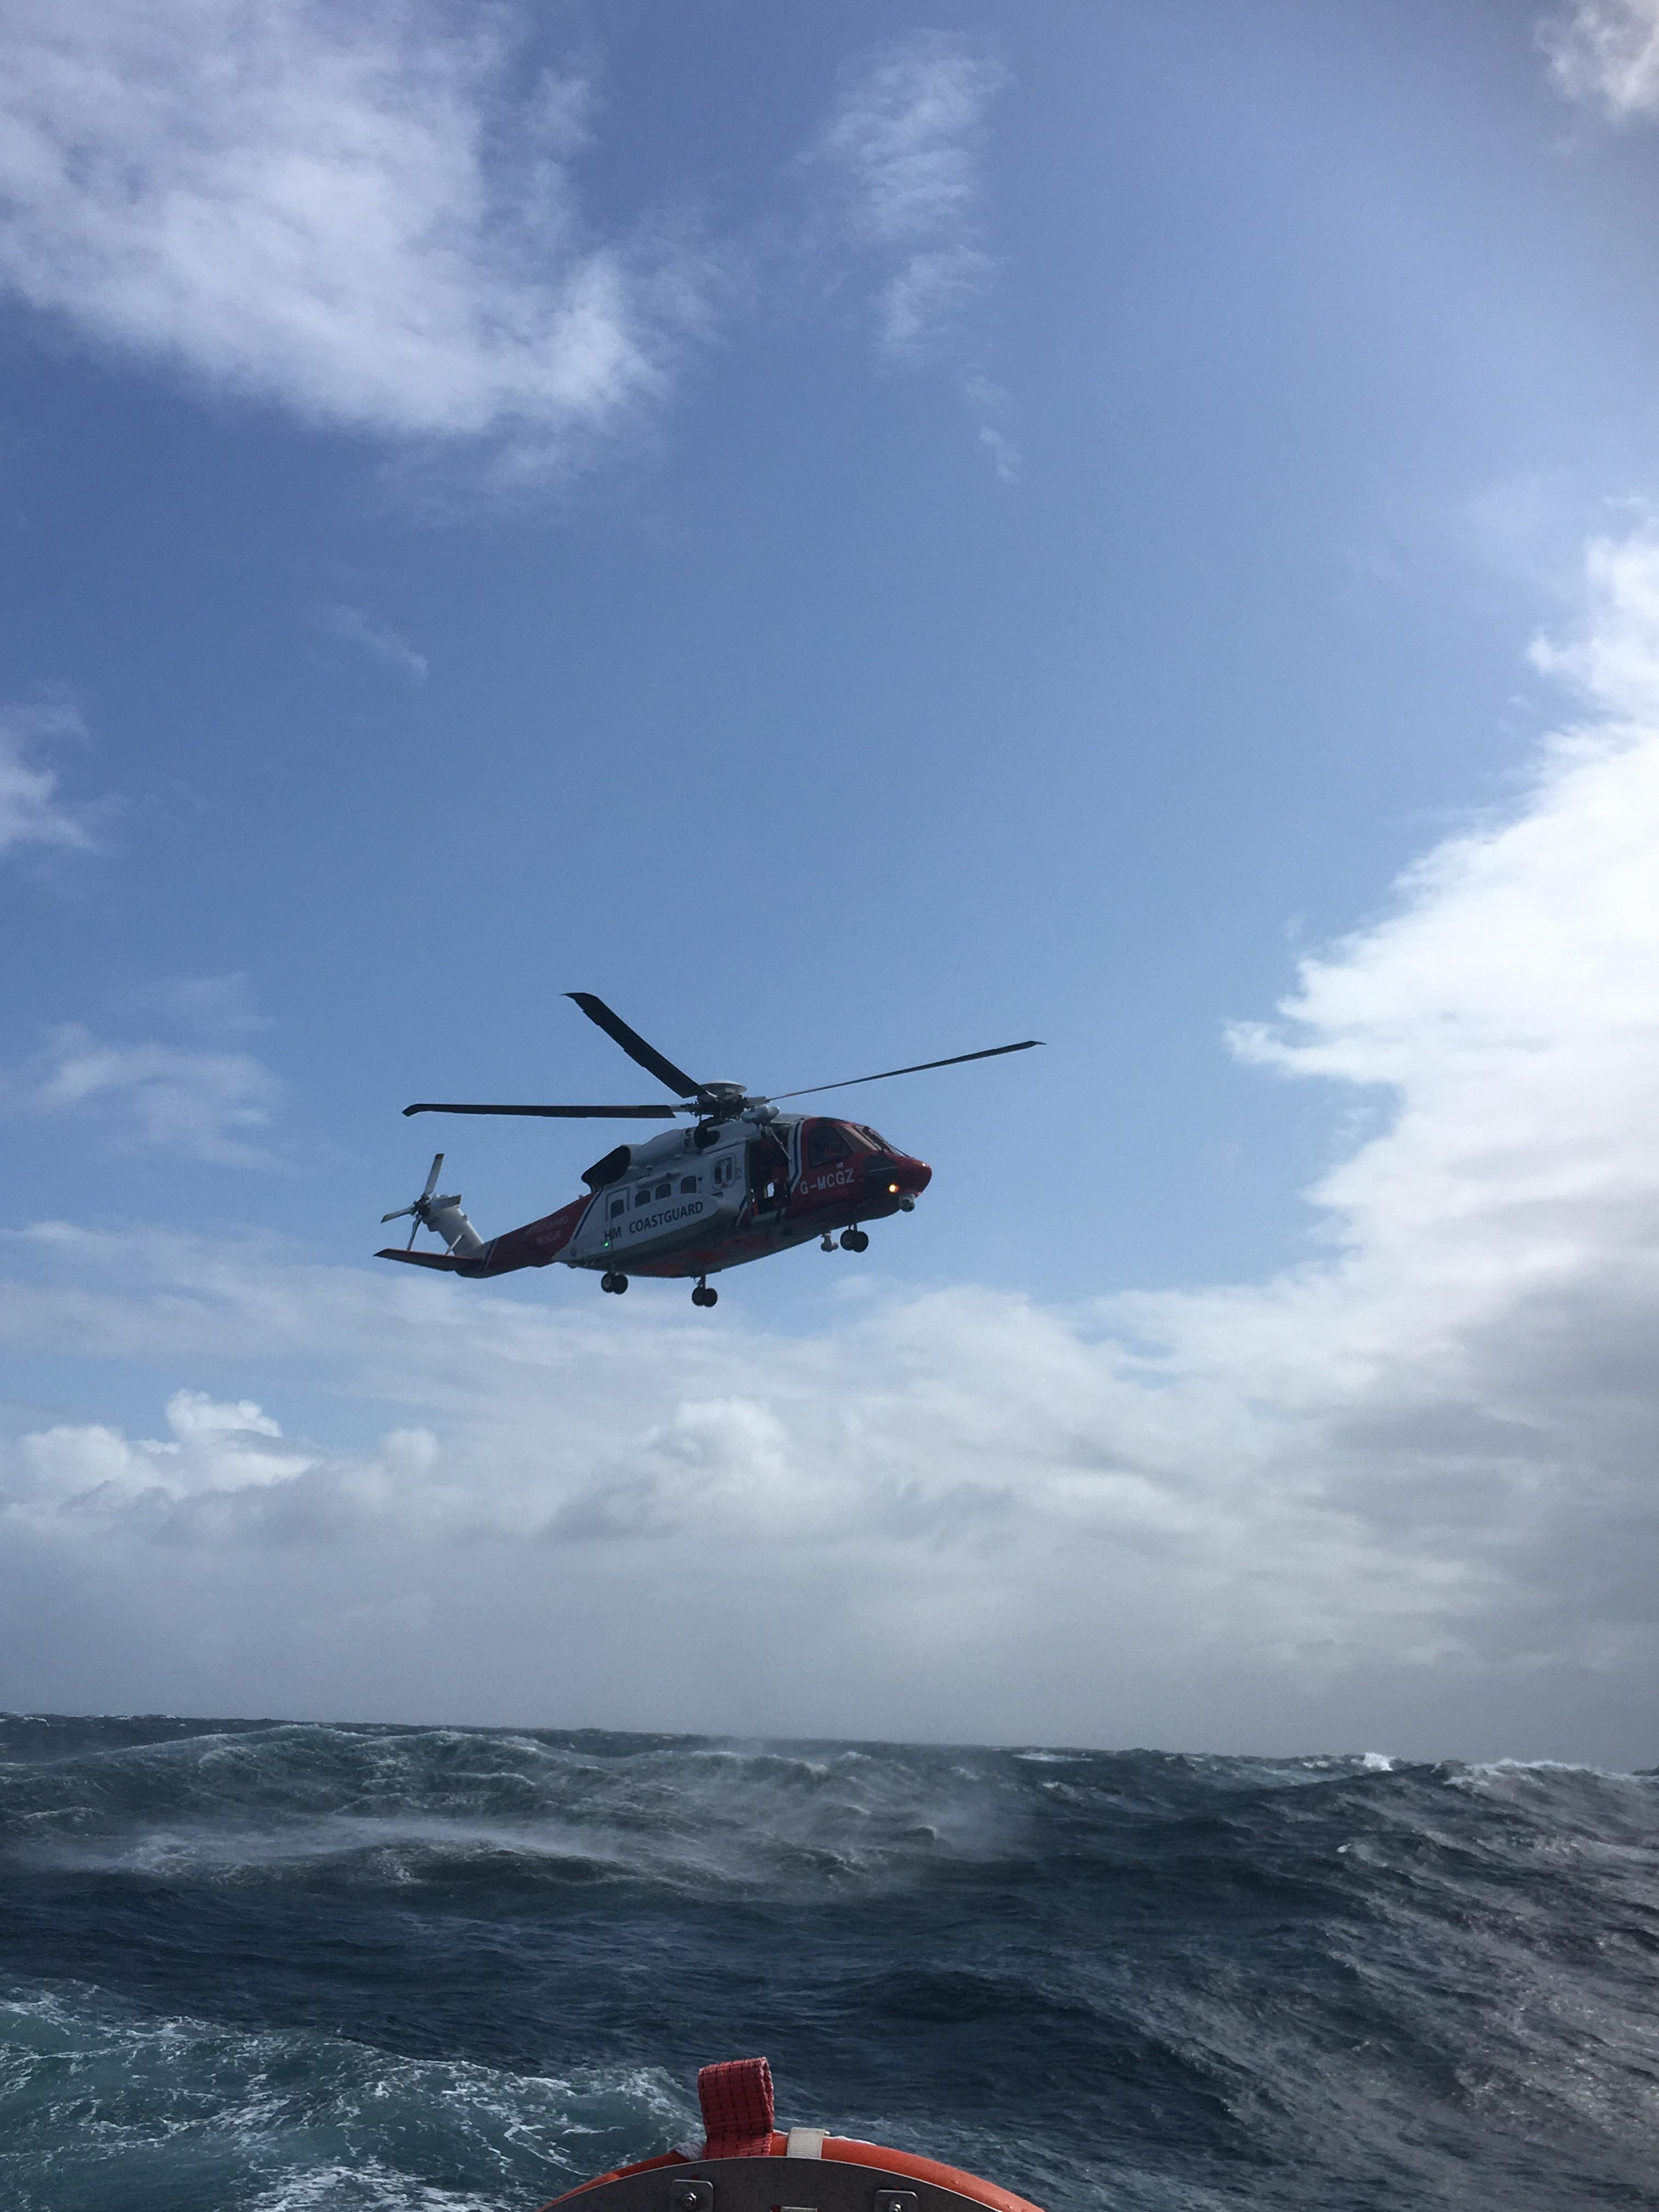 St Ives RNLI rescue along with HMCG helicopter